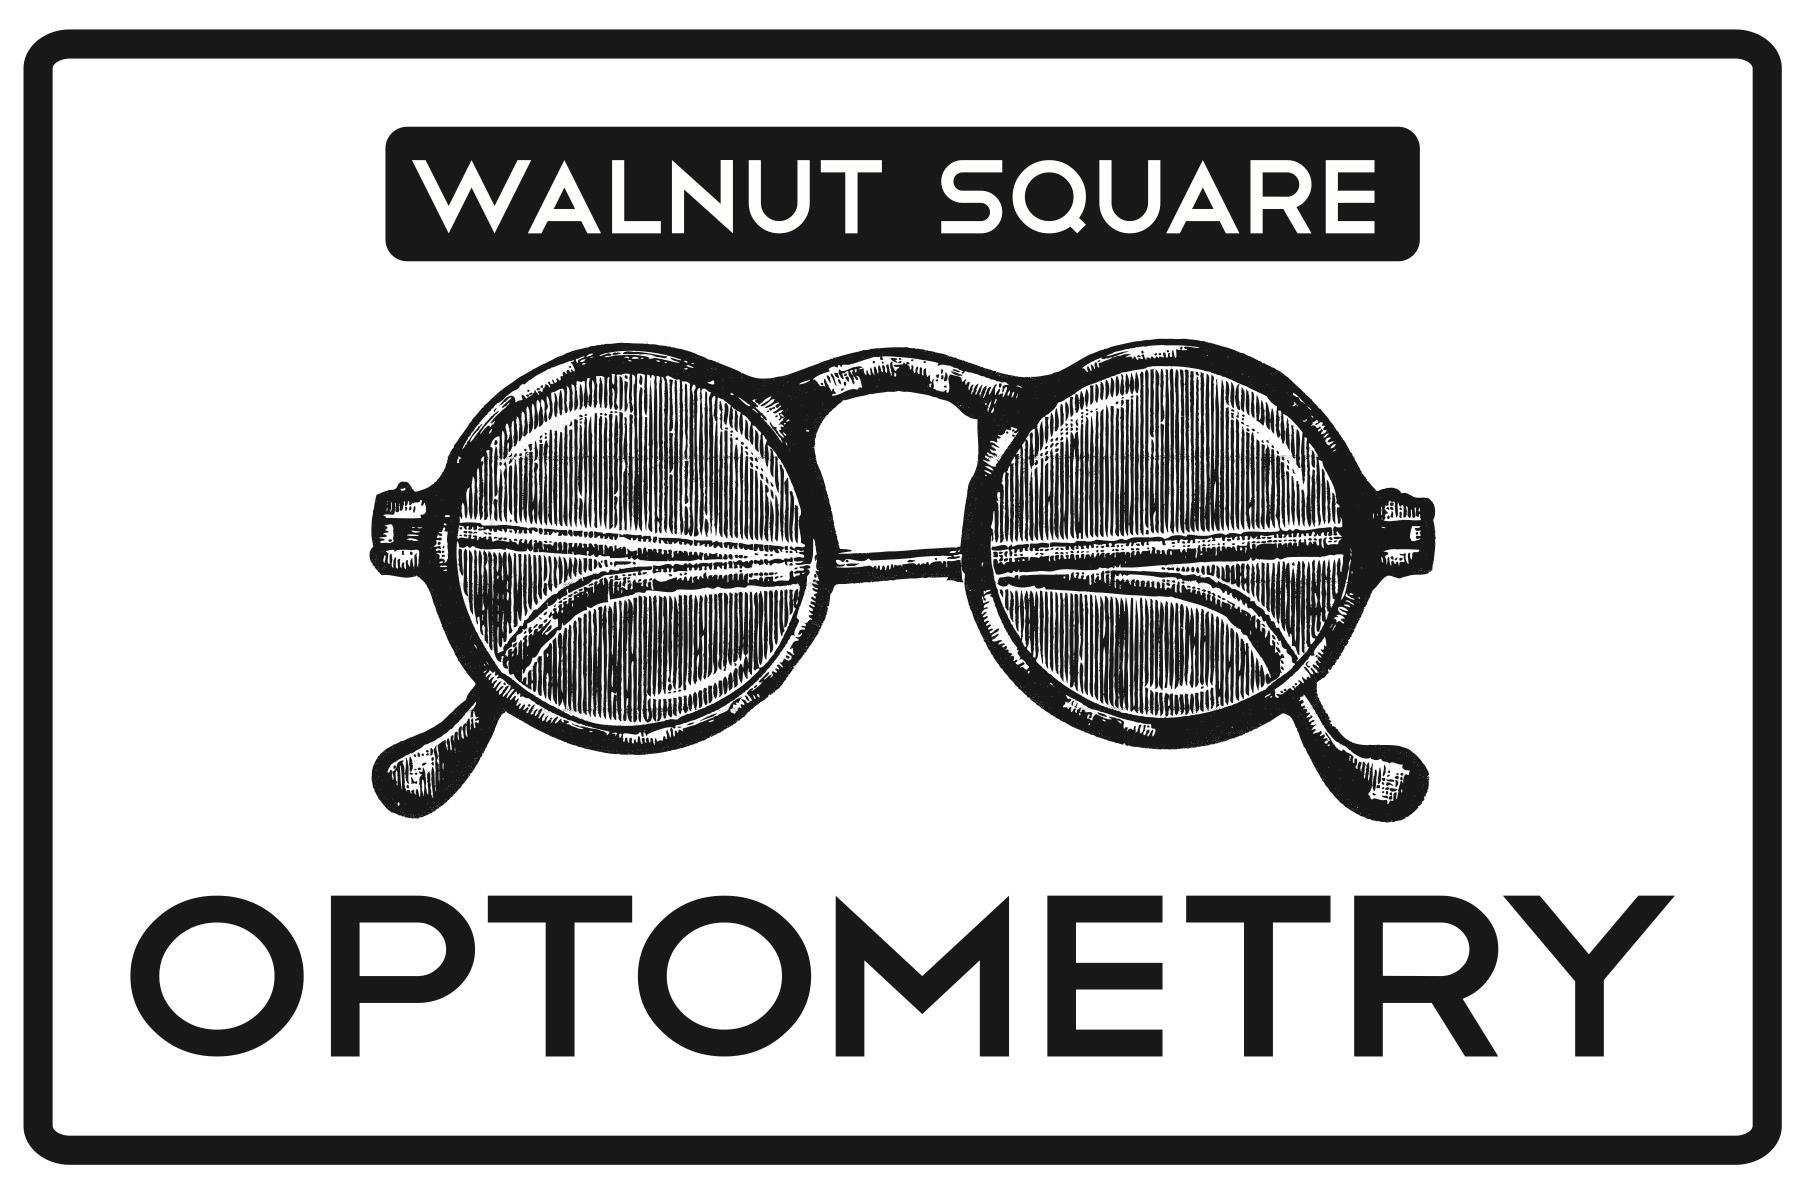 Walnut Square Optometry, Berkeley, CA - Localwise business profile picture